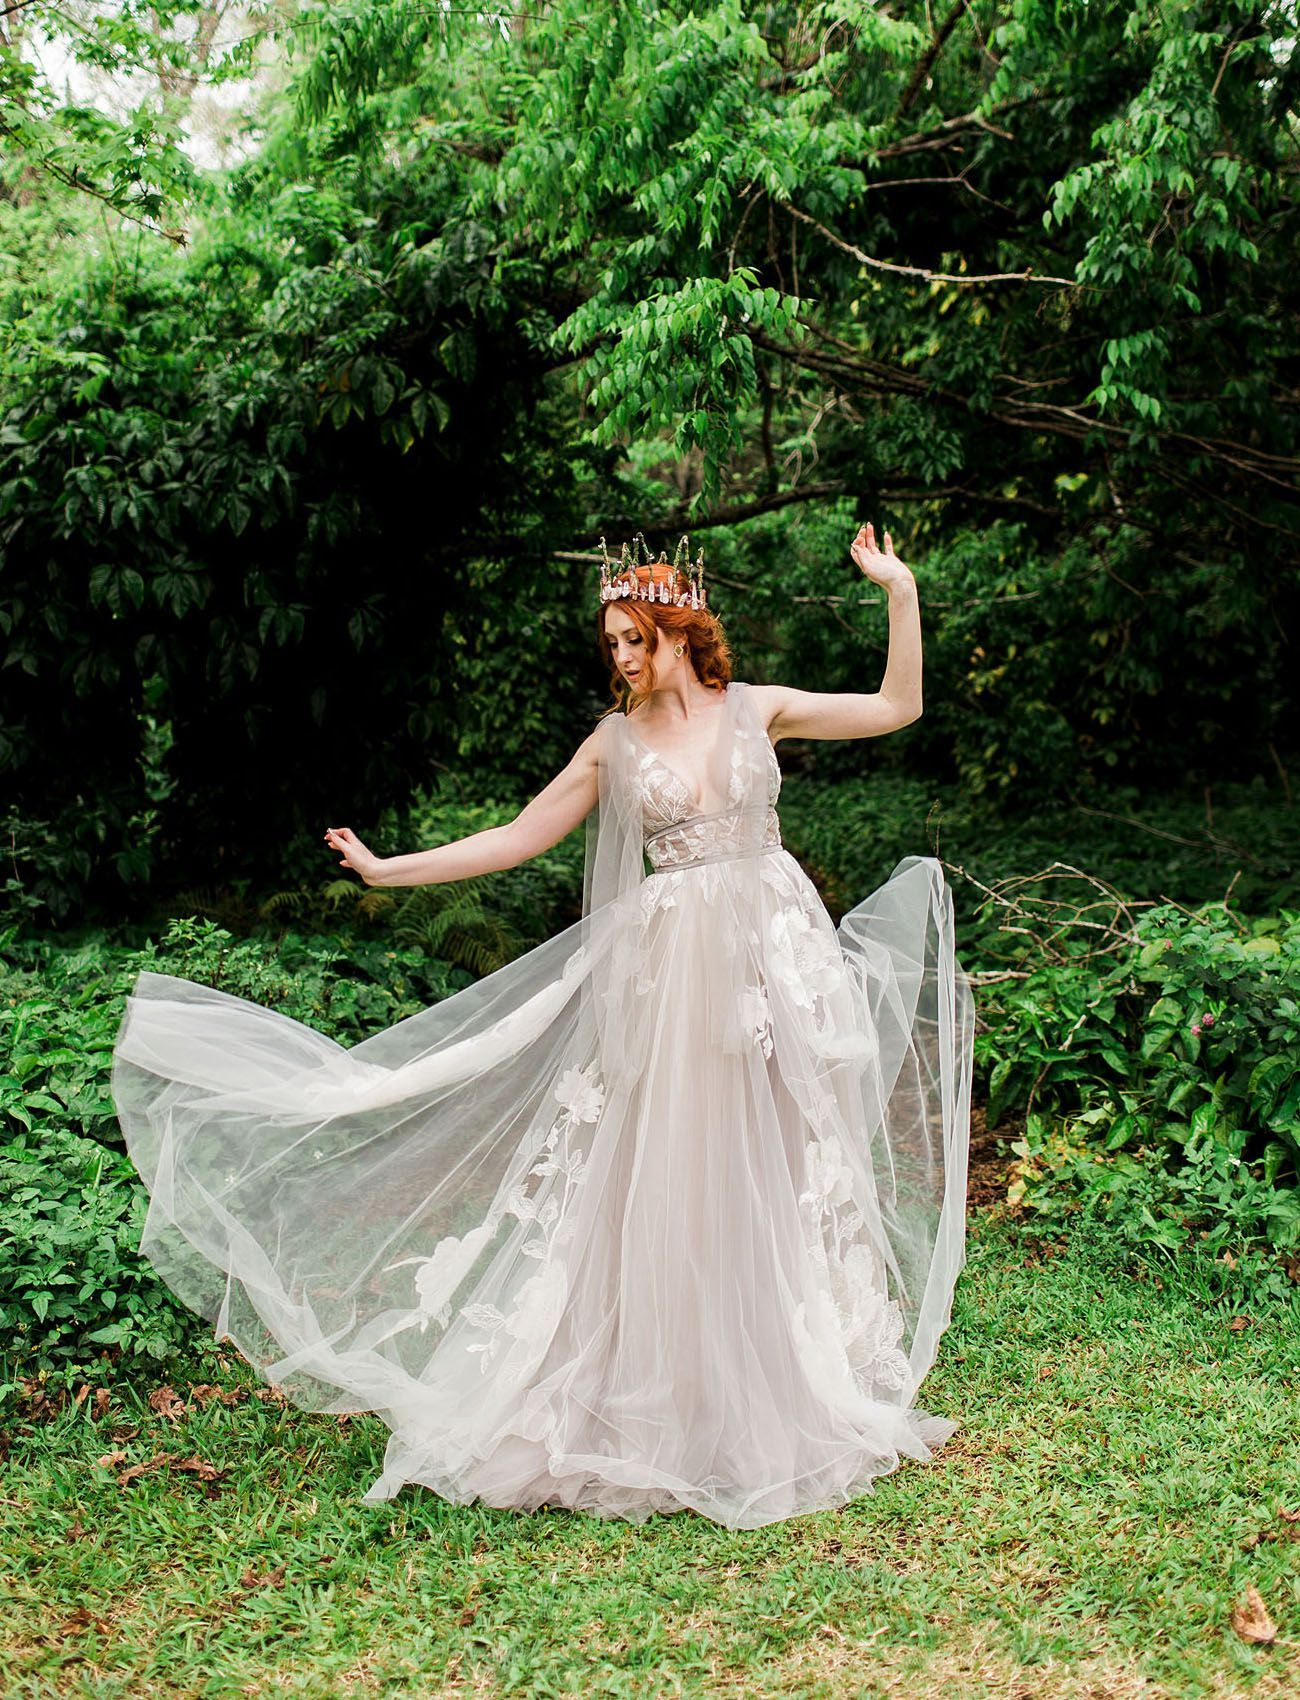 One Ring To Rule Them All A Fantasy Forest Wedding Bonded By Fellowship Green Wedding Sho Forest Wedding Dress Enchanted Forest Wedding Dress Forest Wedding [ 1700 x 1300 Pixel ]